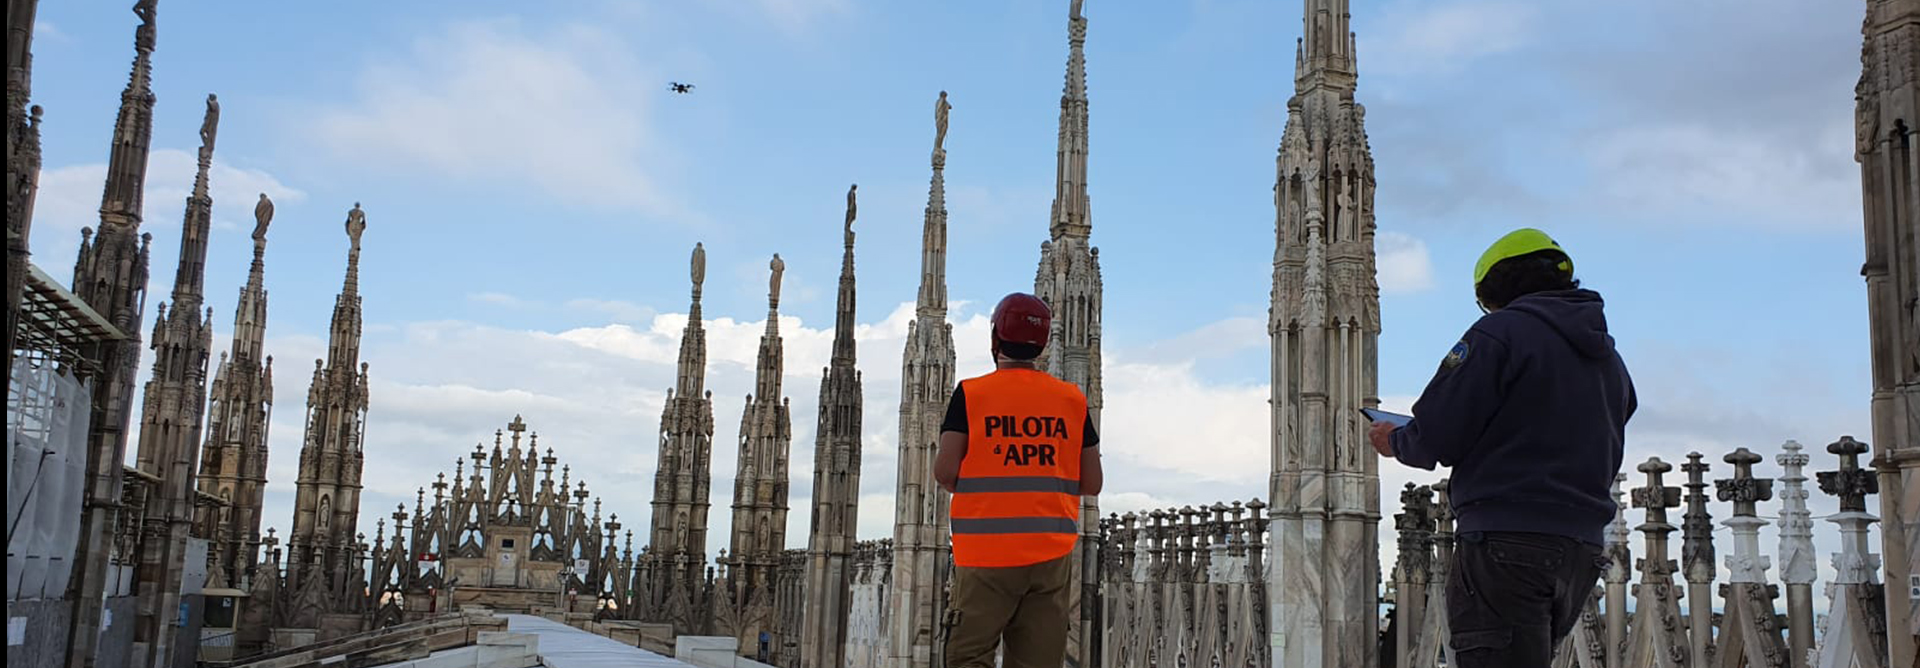 Survey activities on Duomo di Milano rooftops